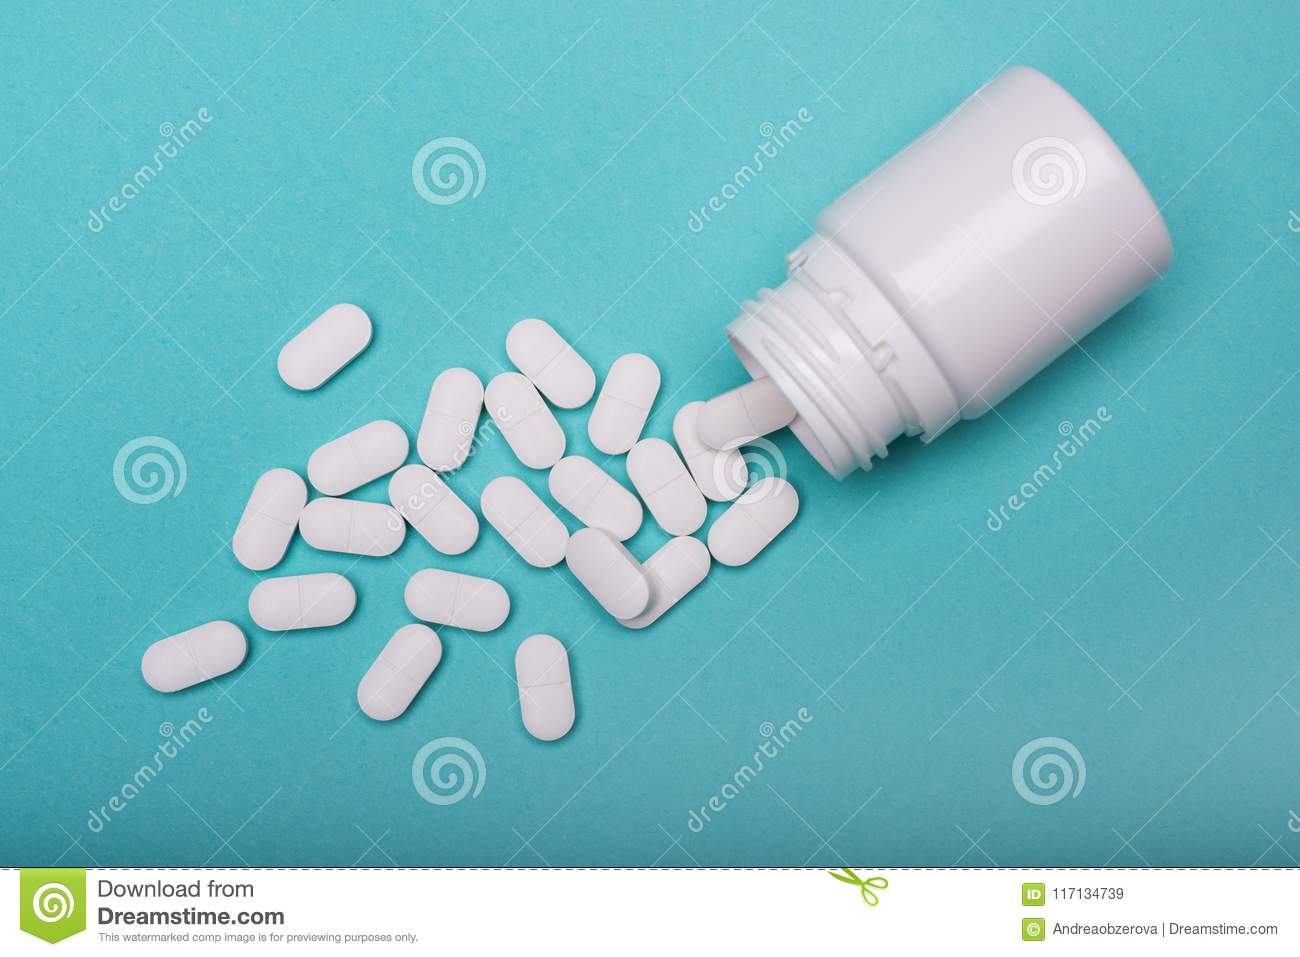 Opioid epidemic. Medication bottle and white pills spilled on blue pastel coloured background. Medication and prescription pills.